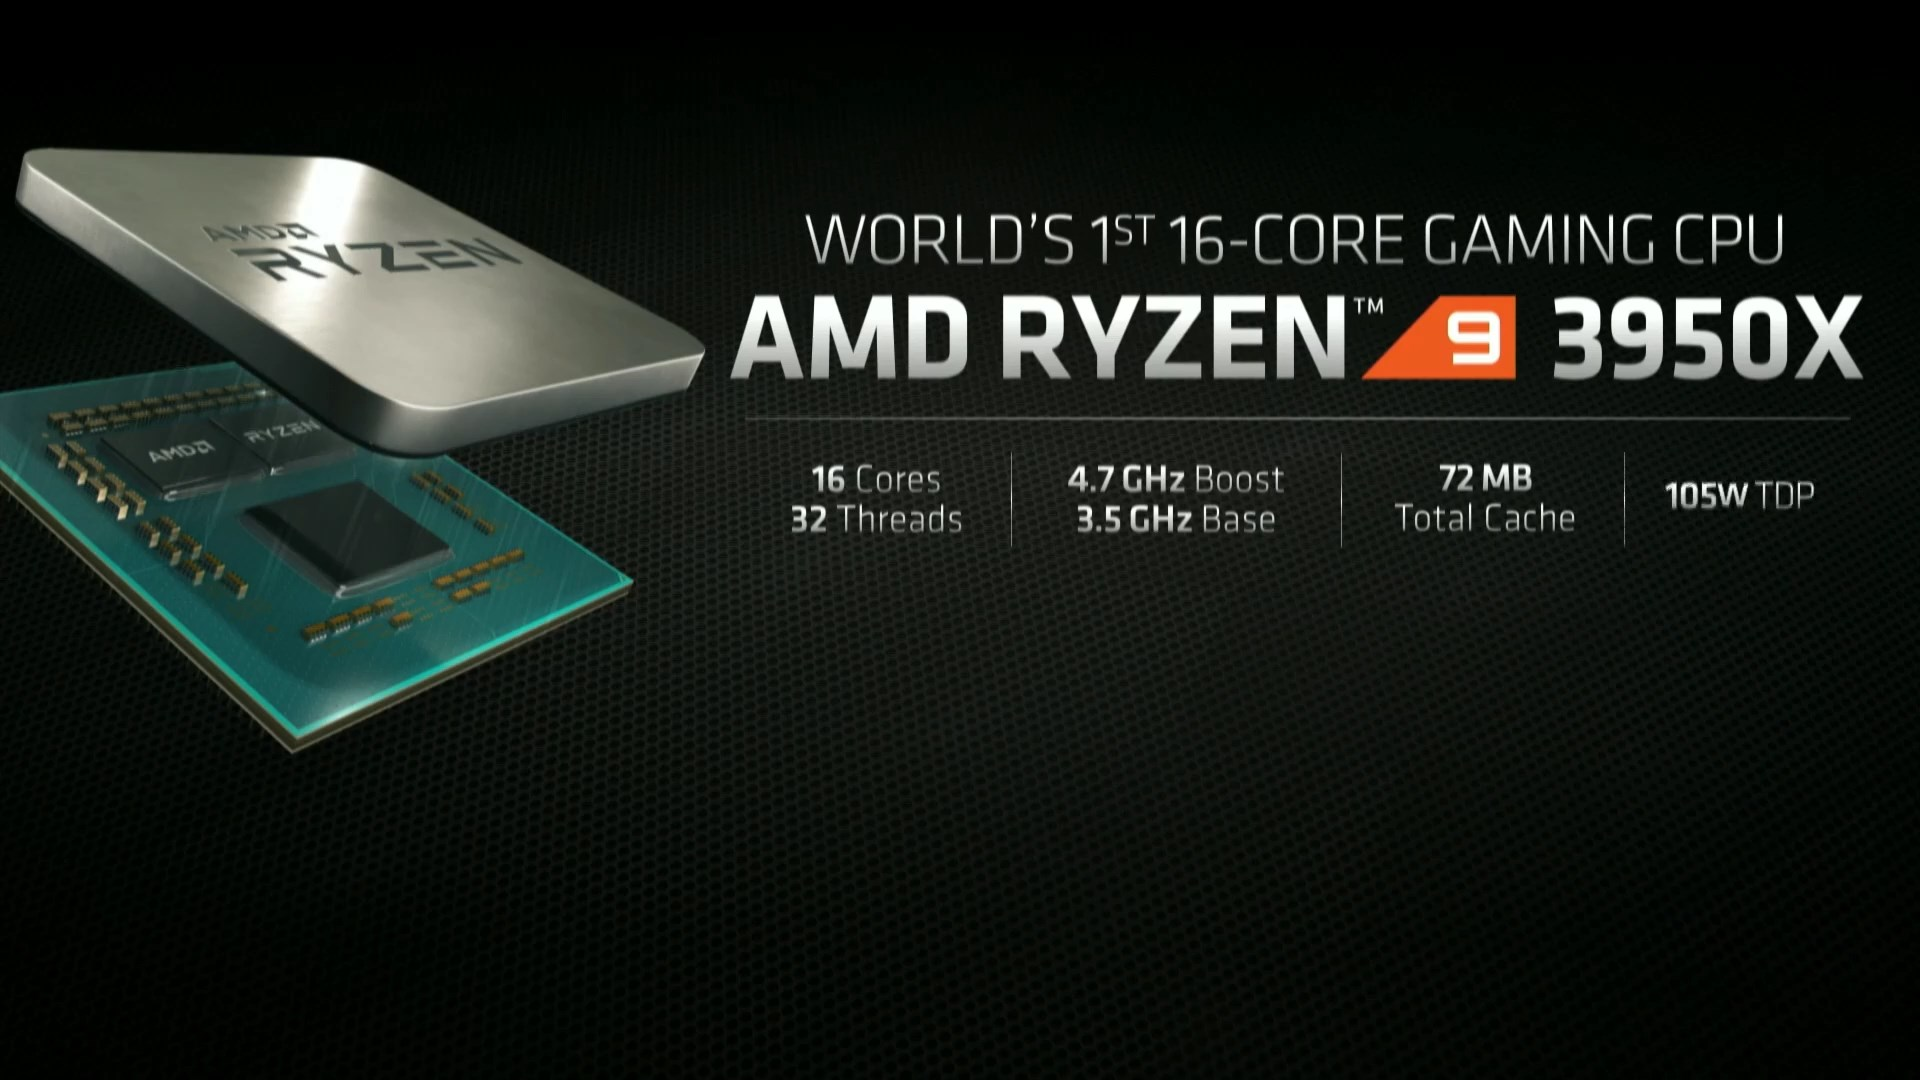 AMD Ryzen 9 3950X 16-core CPU Announced at E3 1